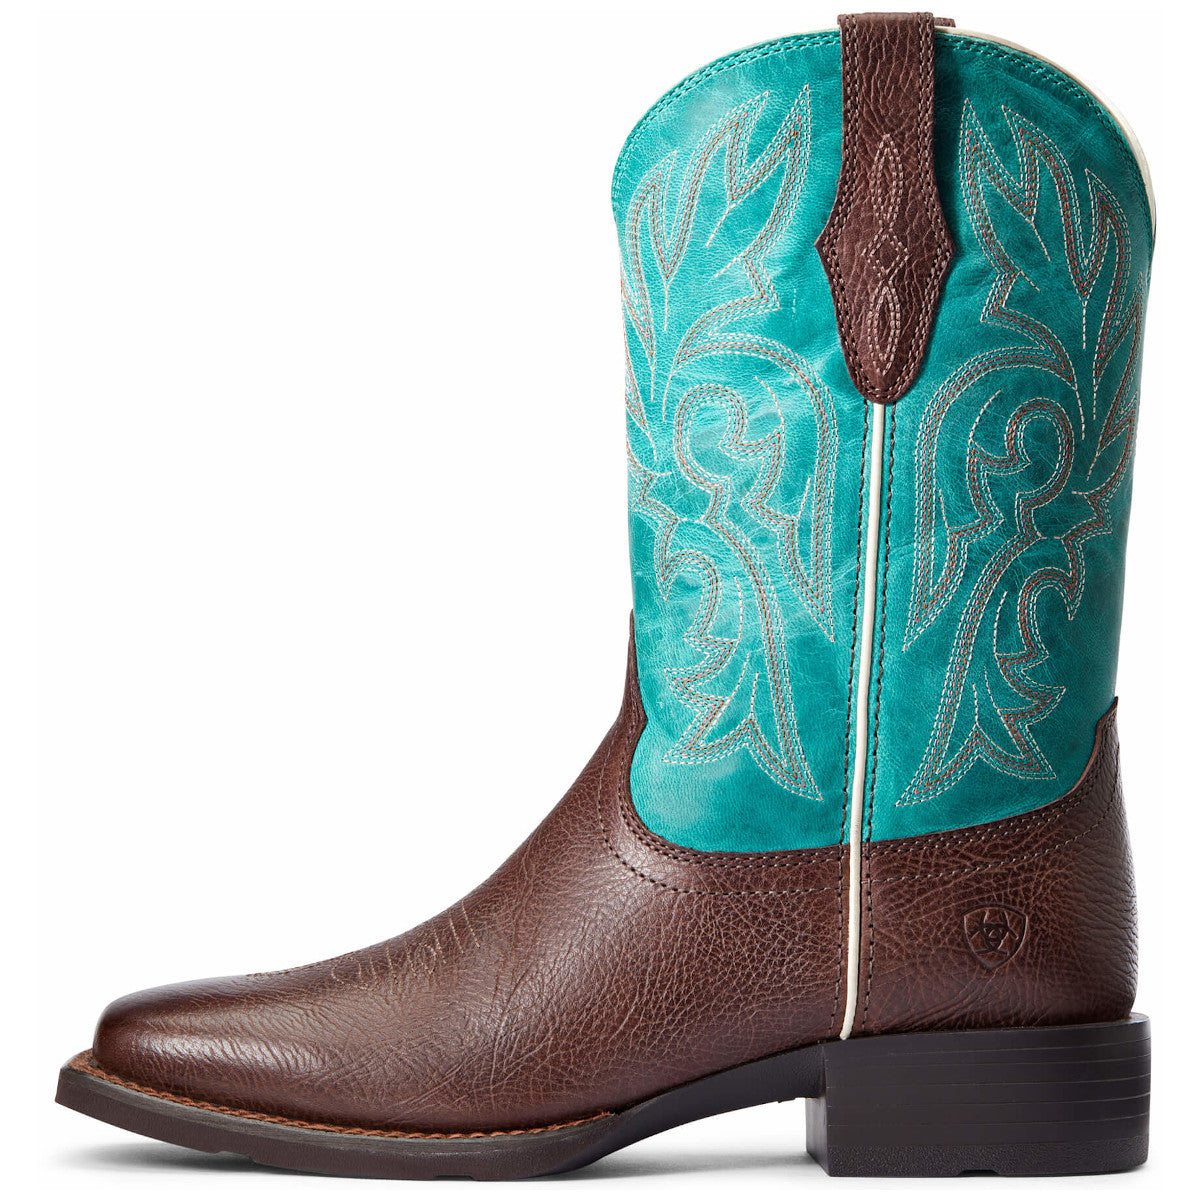 Ariat Women's Cattle Drive Cowgirl Boots